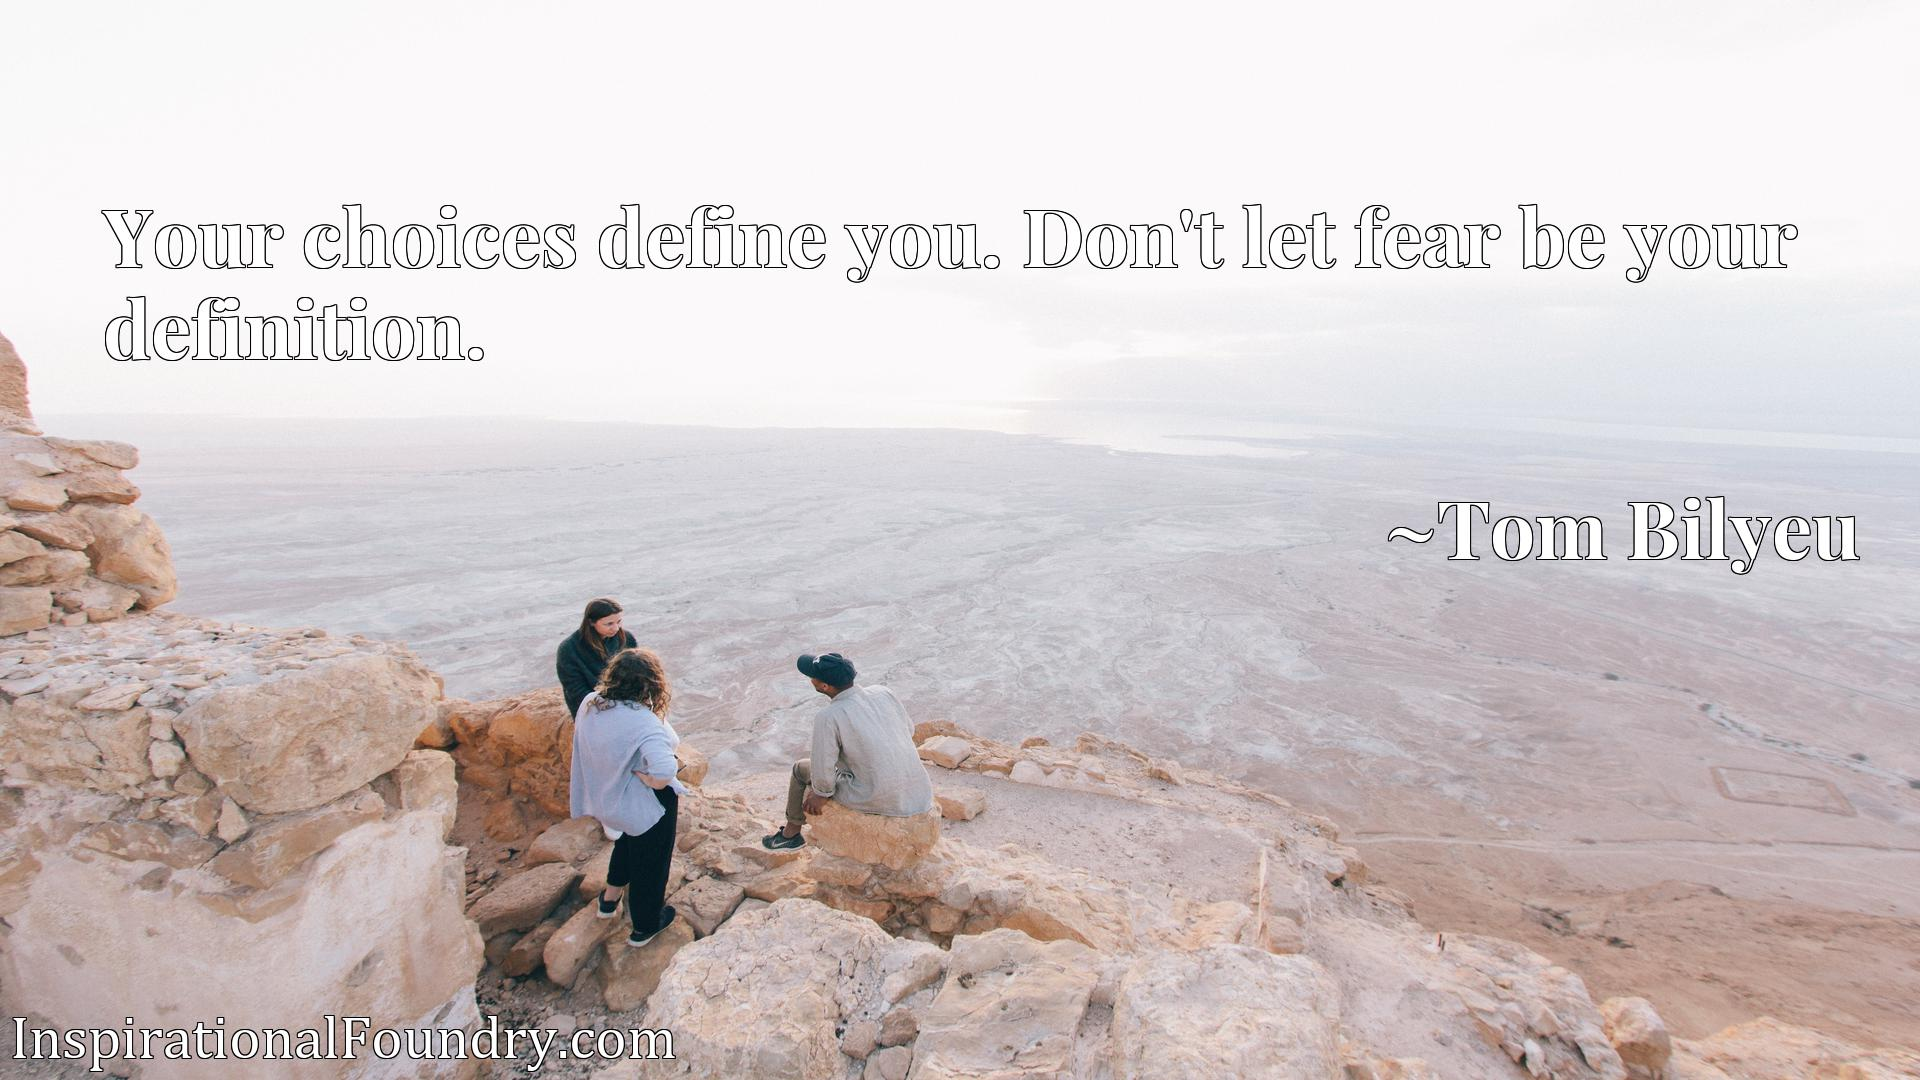 Your choices define you. Don't let fear be your definition.